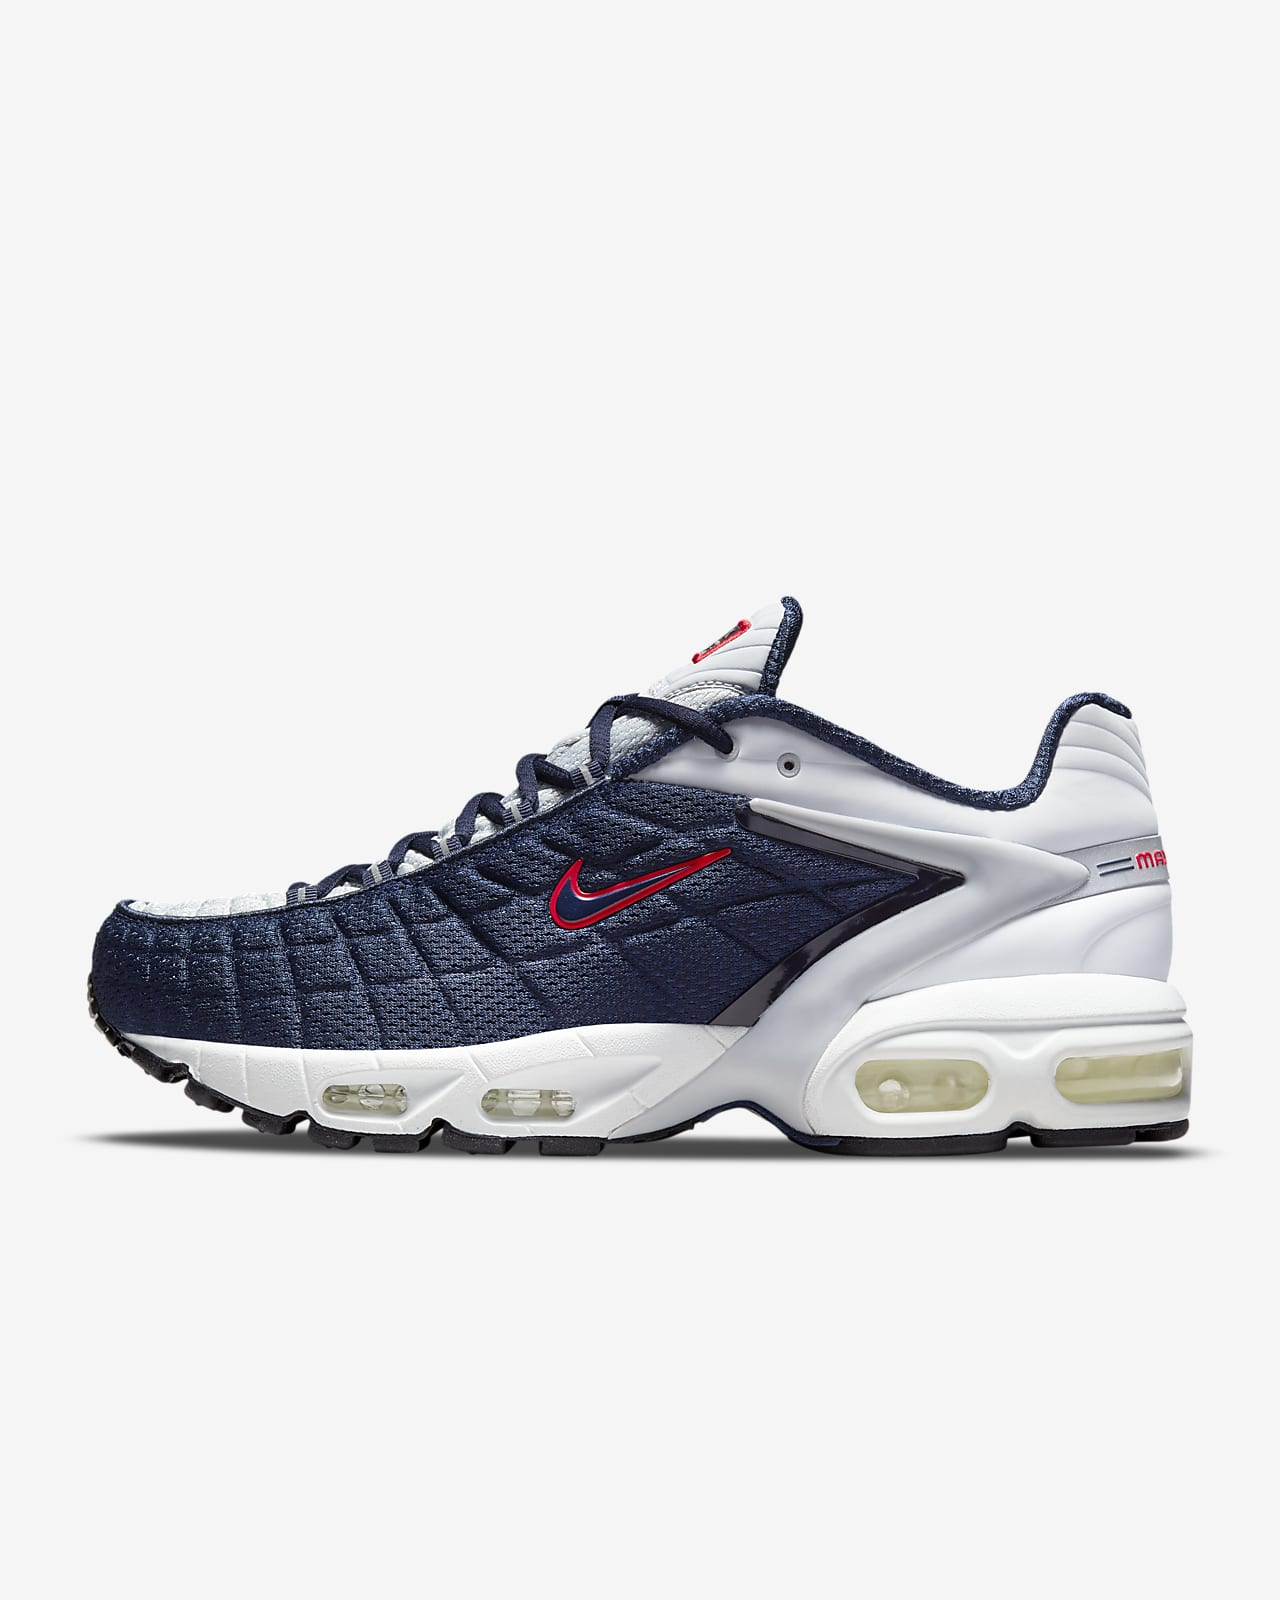 Nike Air Max Tailwind V SP Men's Shoes